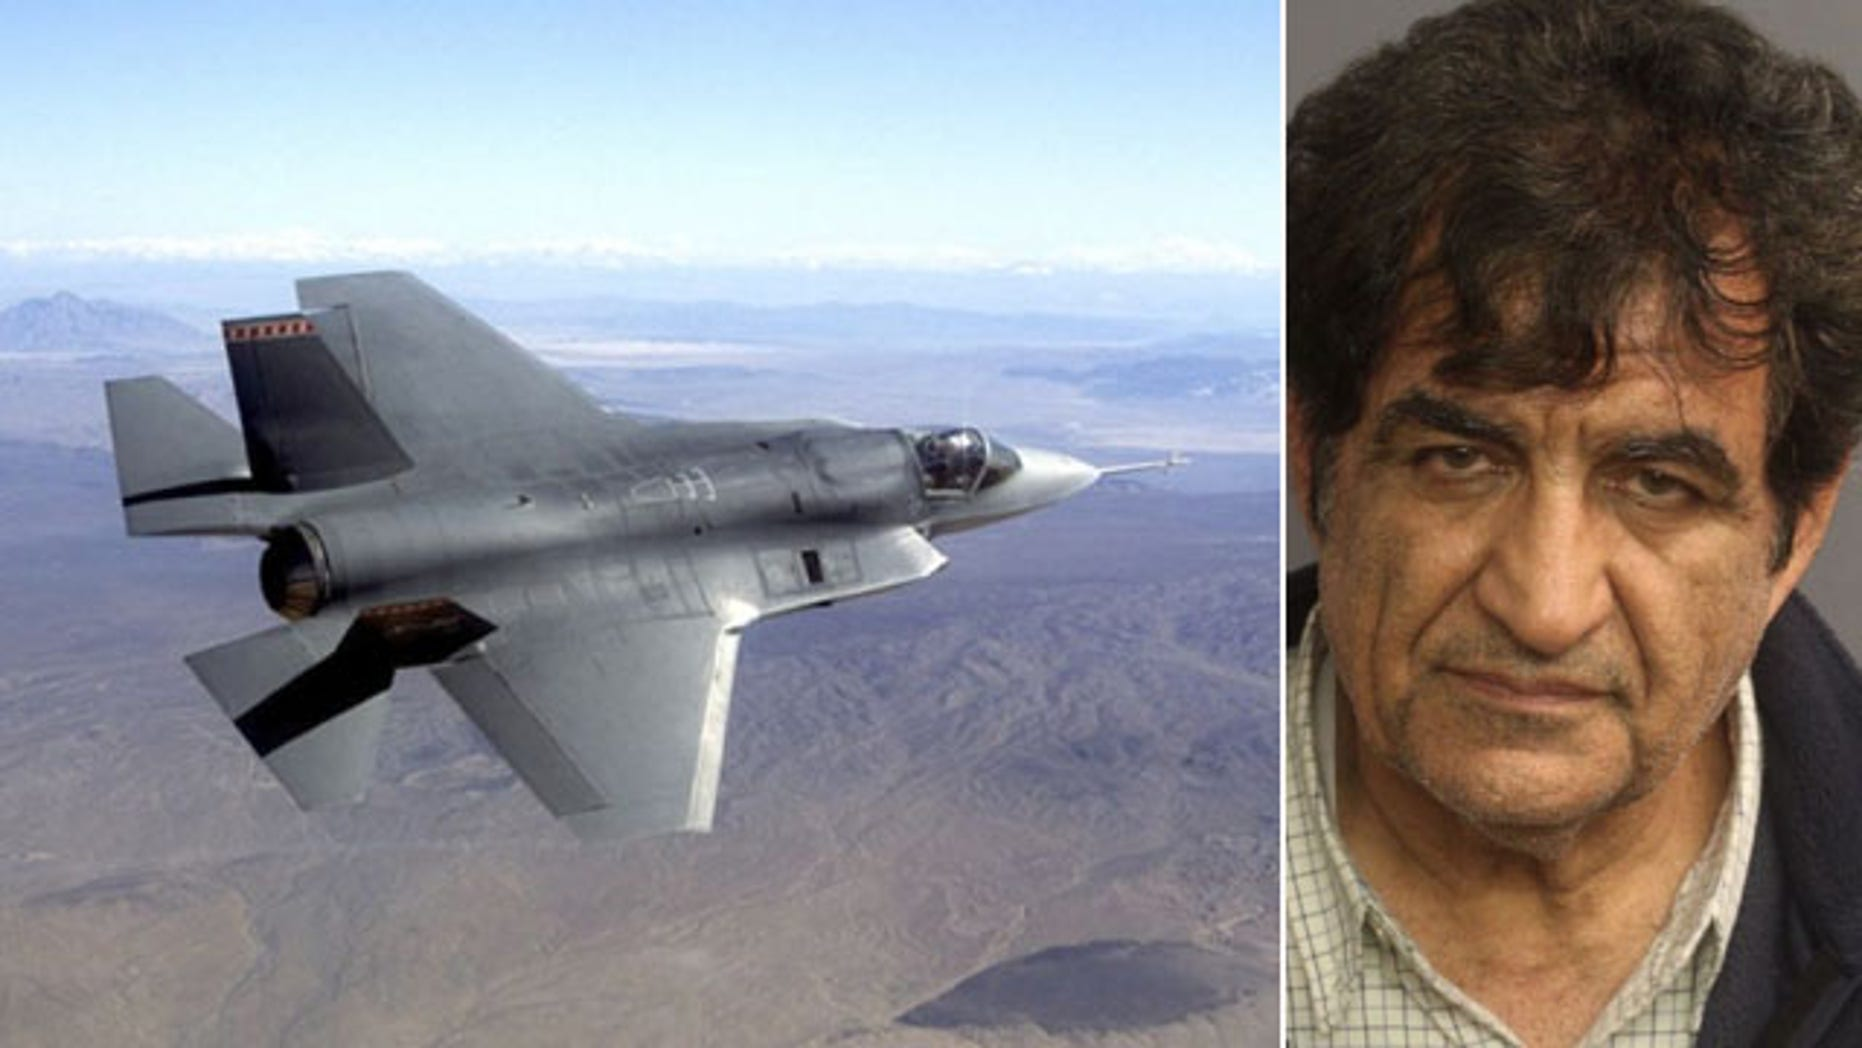 At left, a pre-production model of a F-35 Joint Strike Fighter. At right, a mug shot of Mozaffar Khazaee (AP/Northrup Grumman/Essex County Sheriff's Office)